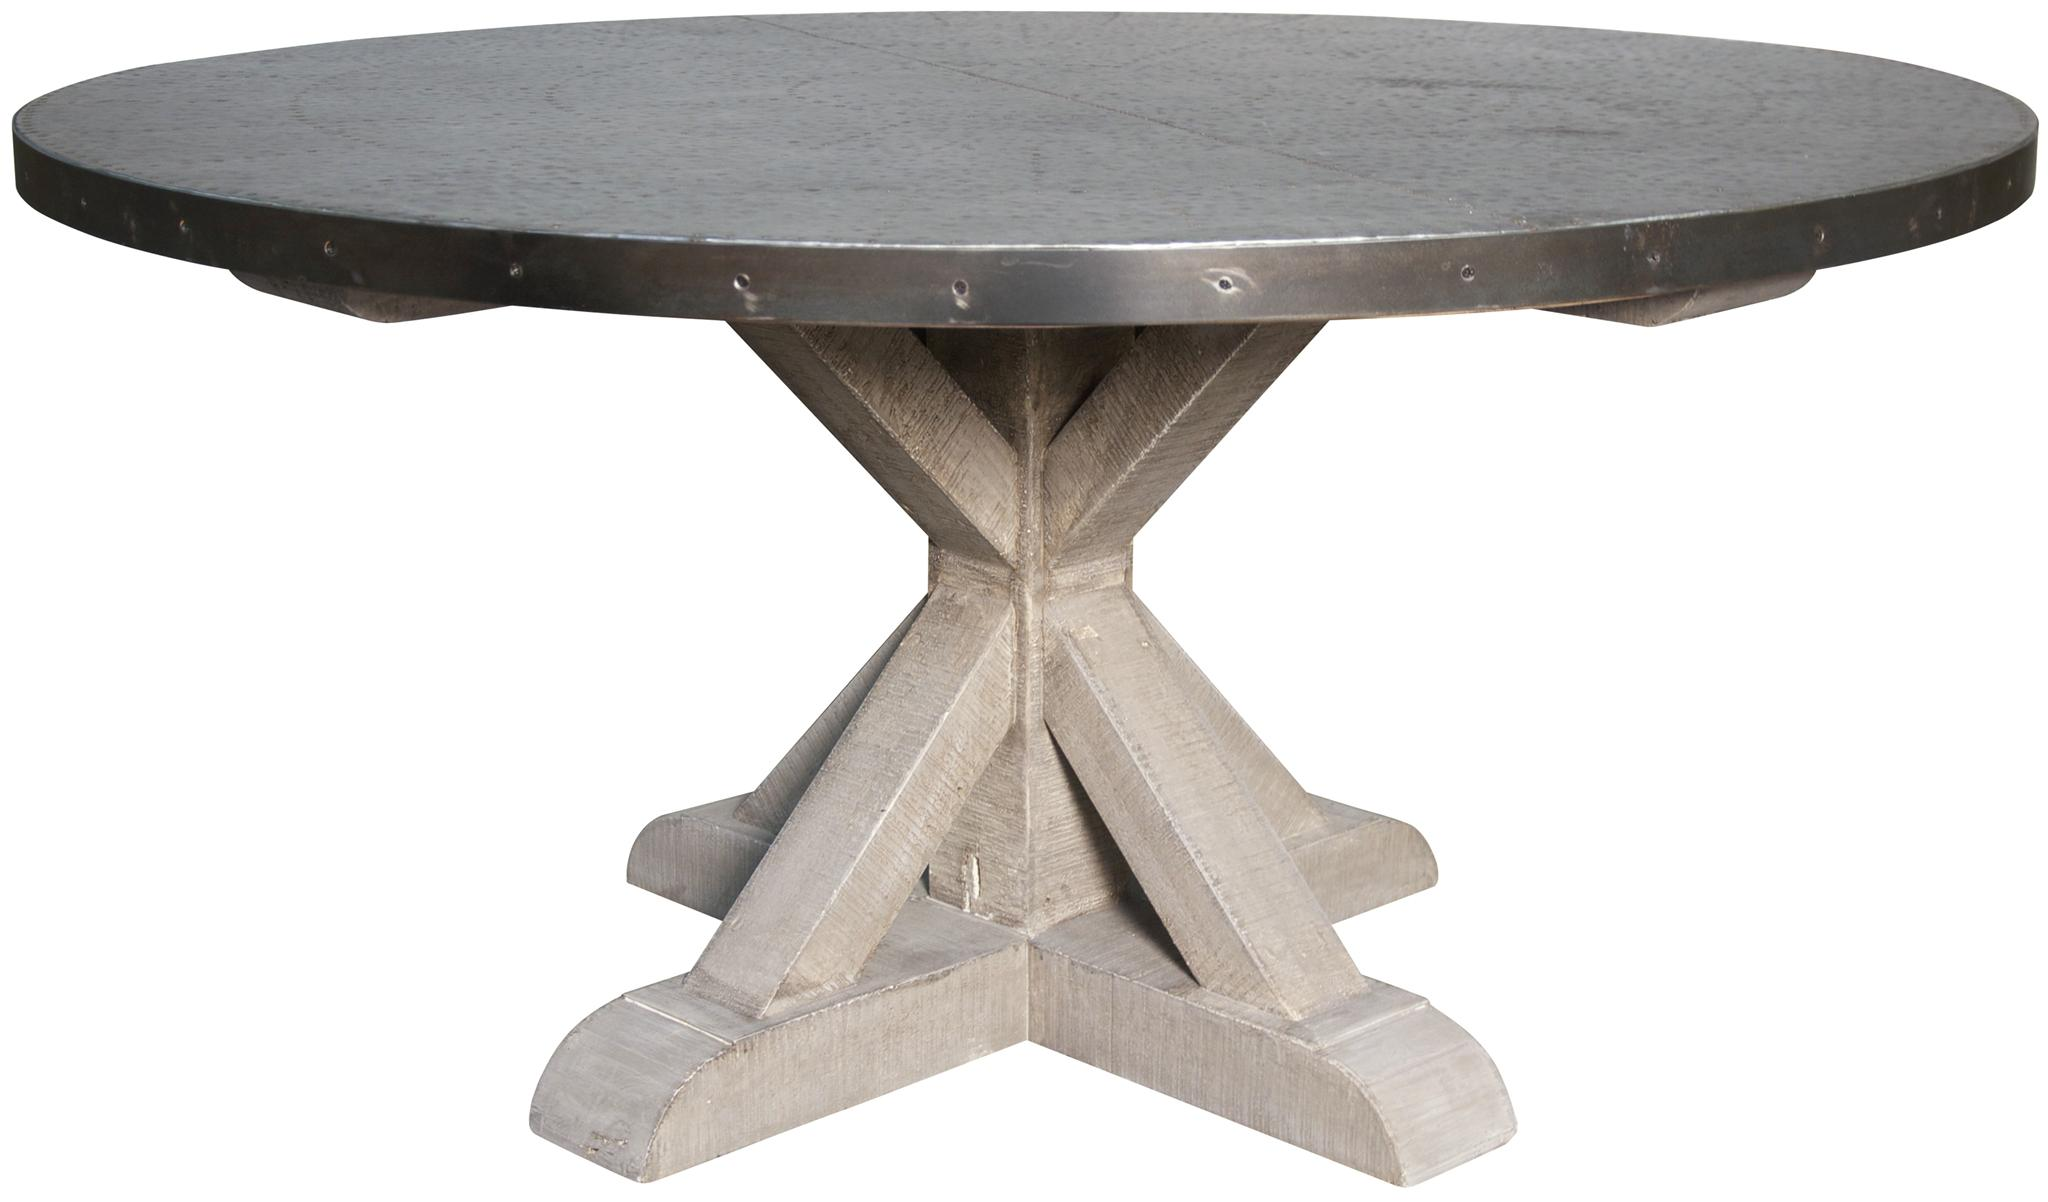 QS Zinc Round Table With X Base Vintage